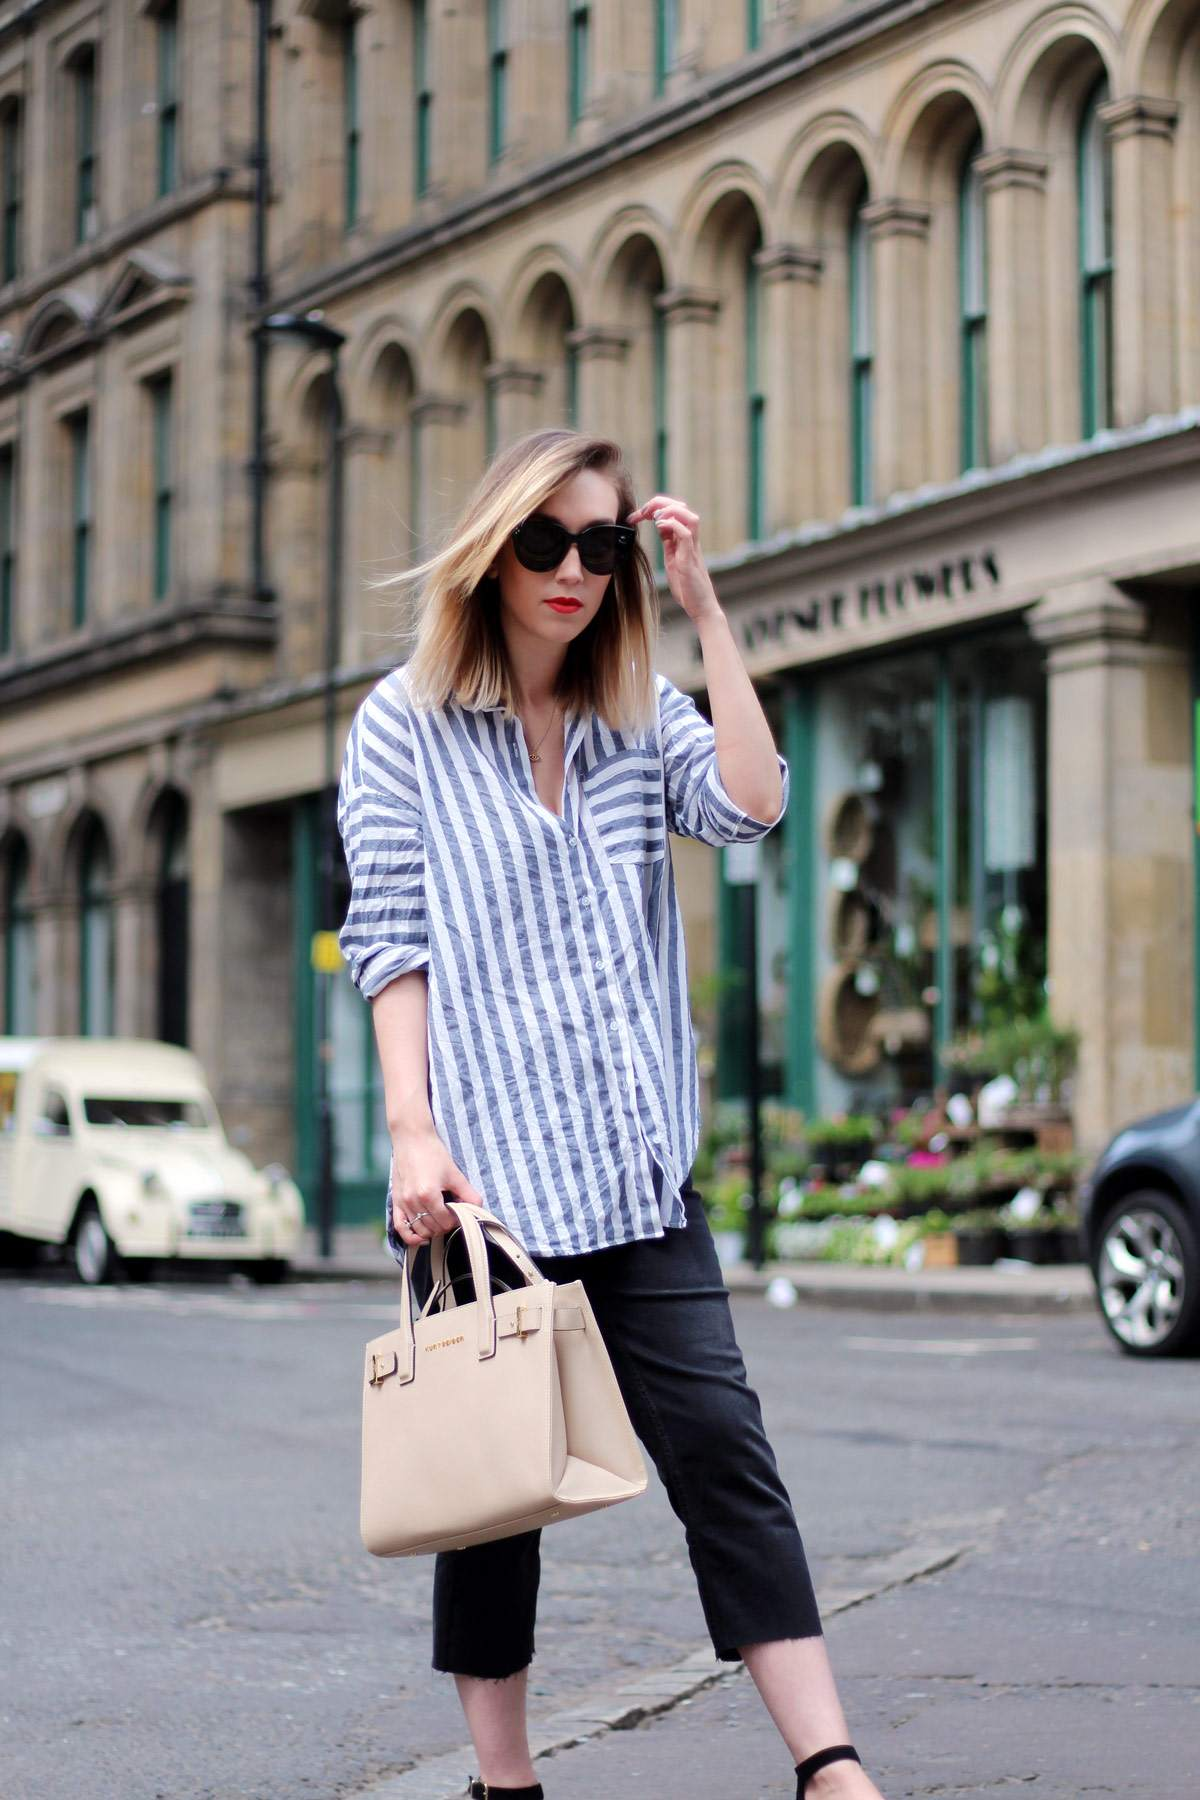 kurt-geiger-espadrille-wedge-heel-black-beige-bag-asos-stripe-shirt-celine-audrey-sunglasses-5